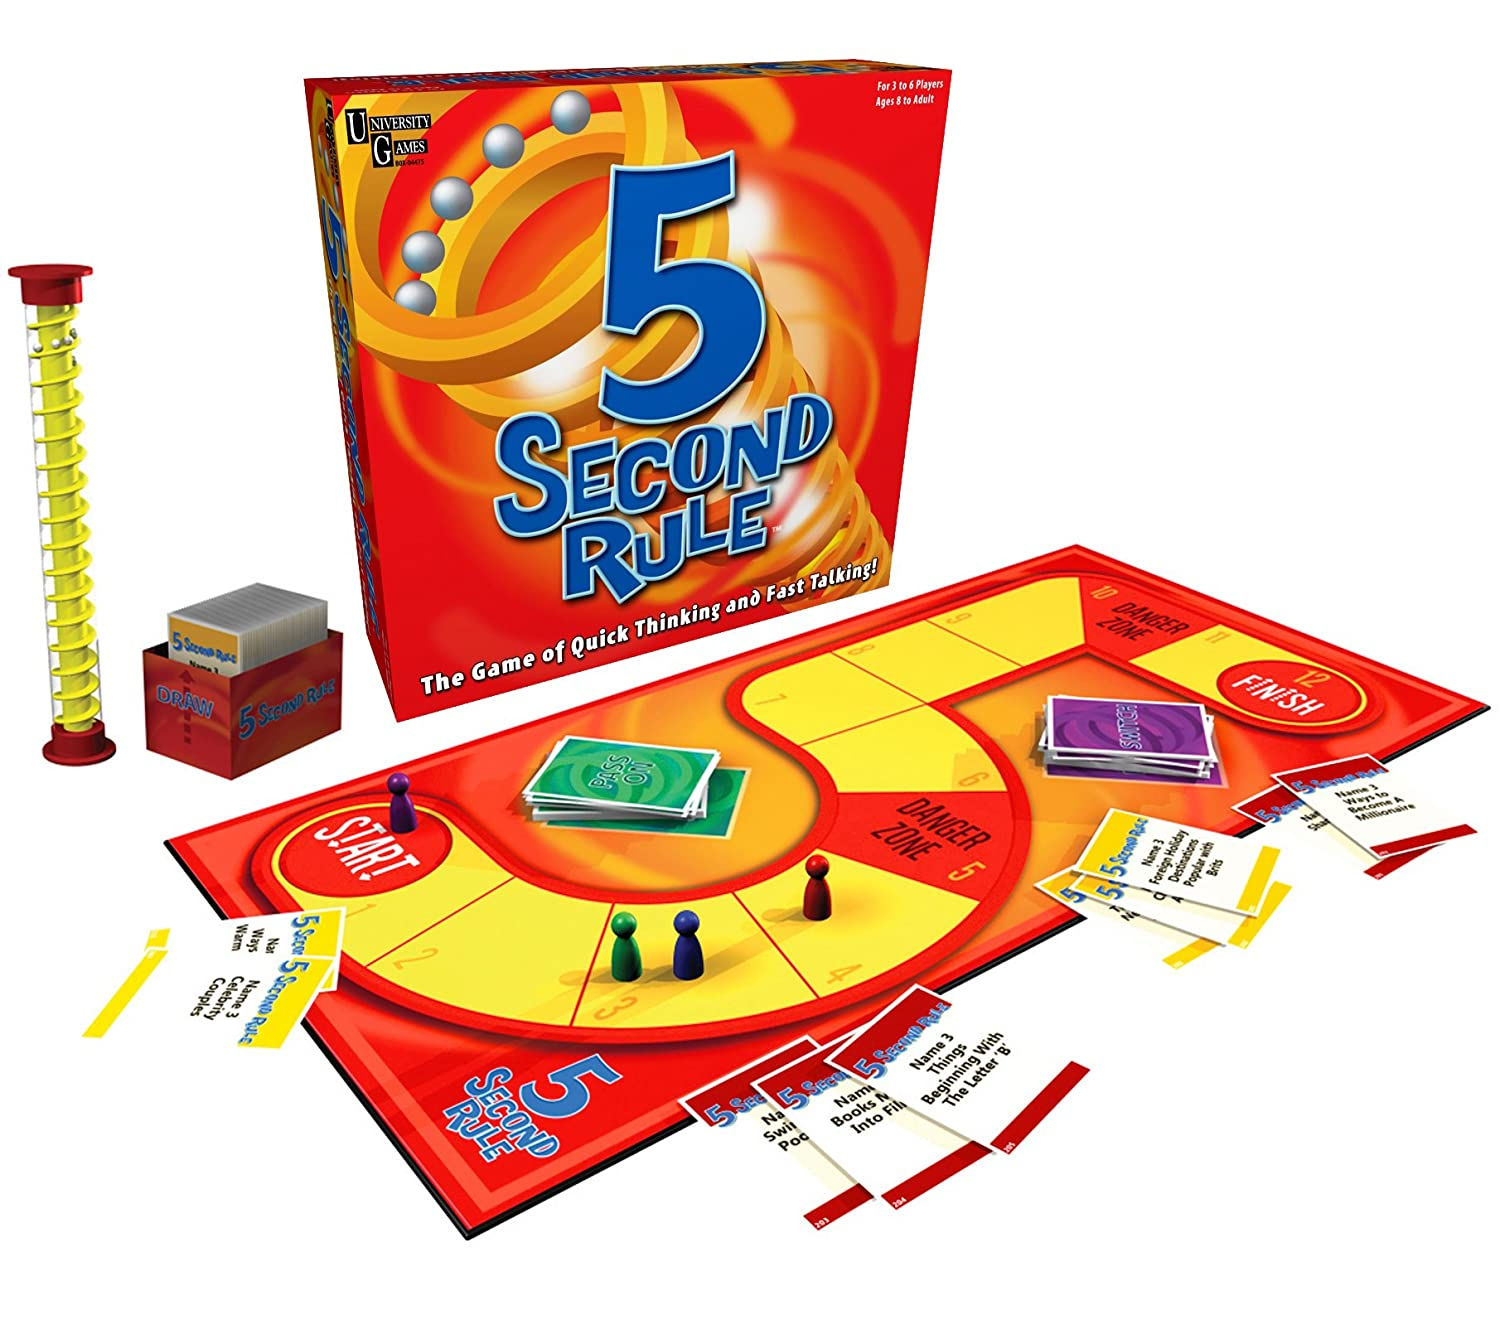 University Games 5 Second Rule the Game of Quick Thinking and Fast